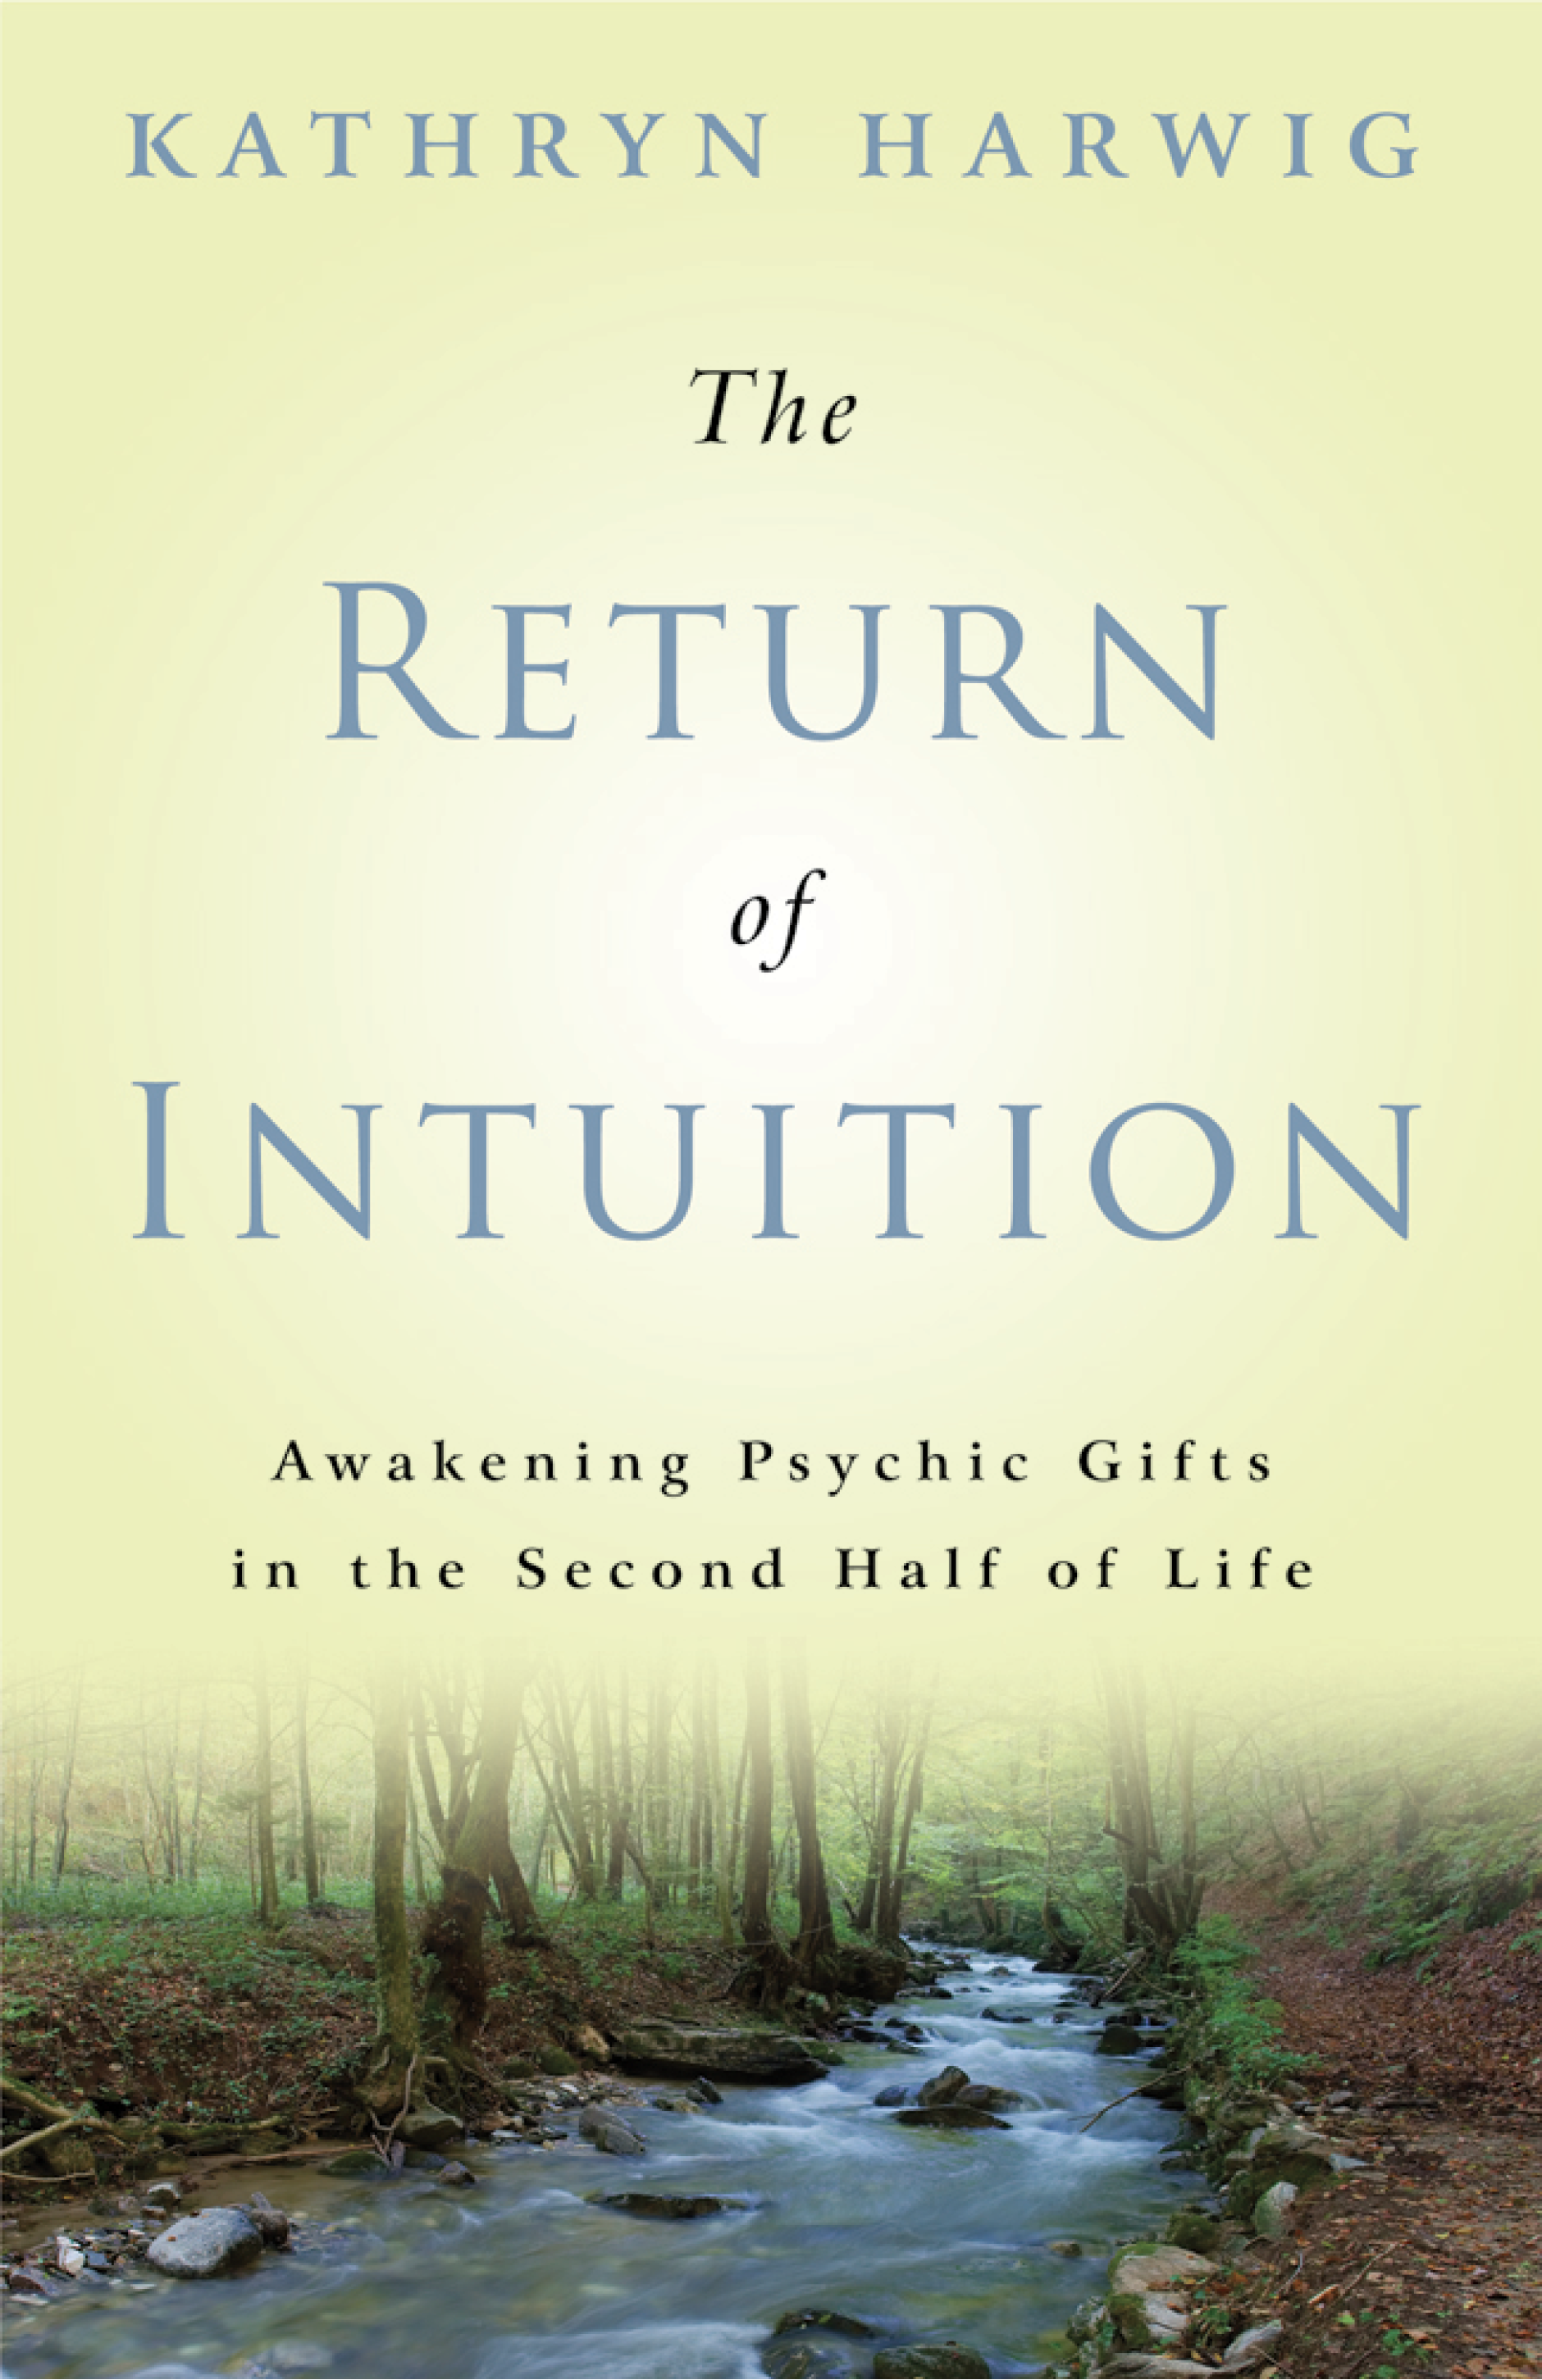 The Return of Intuition: Awakening Psychic Gifts in the Second Half of Life By: Kathryn Harwig